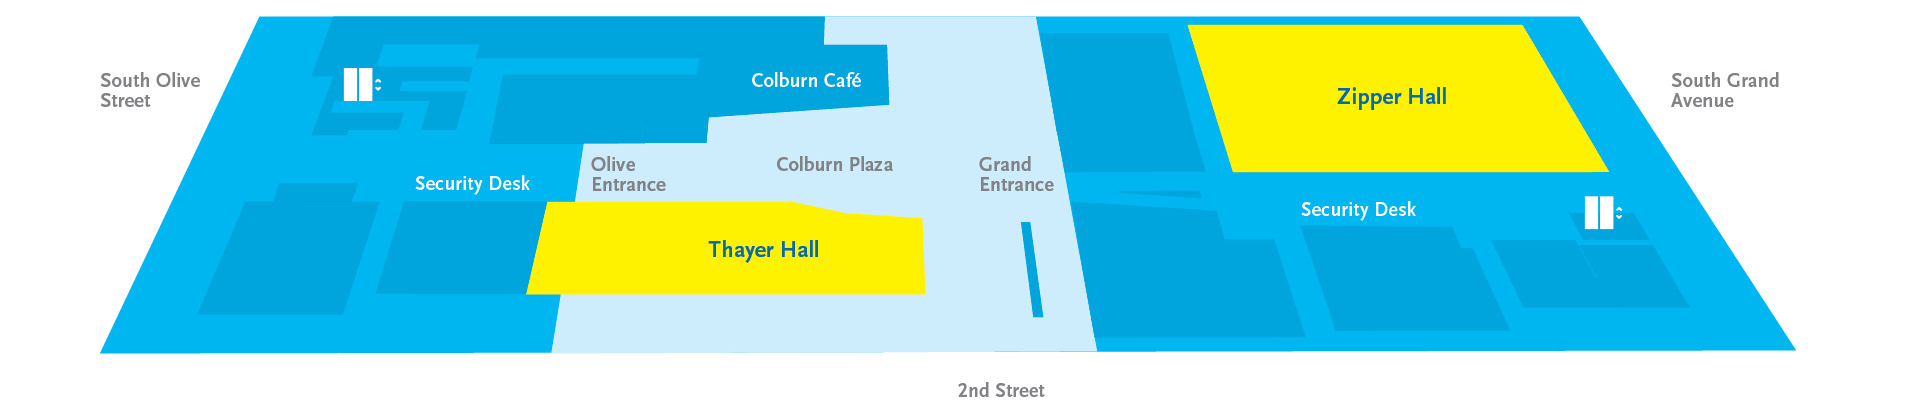 Map of Colburn plaza level from Olive St to Grand Ave